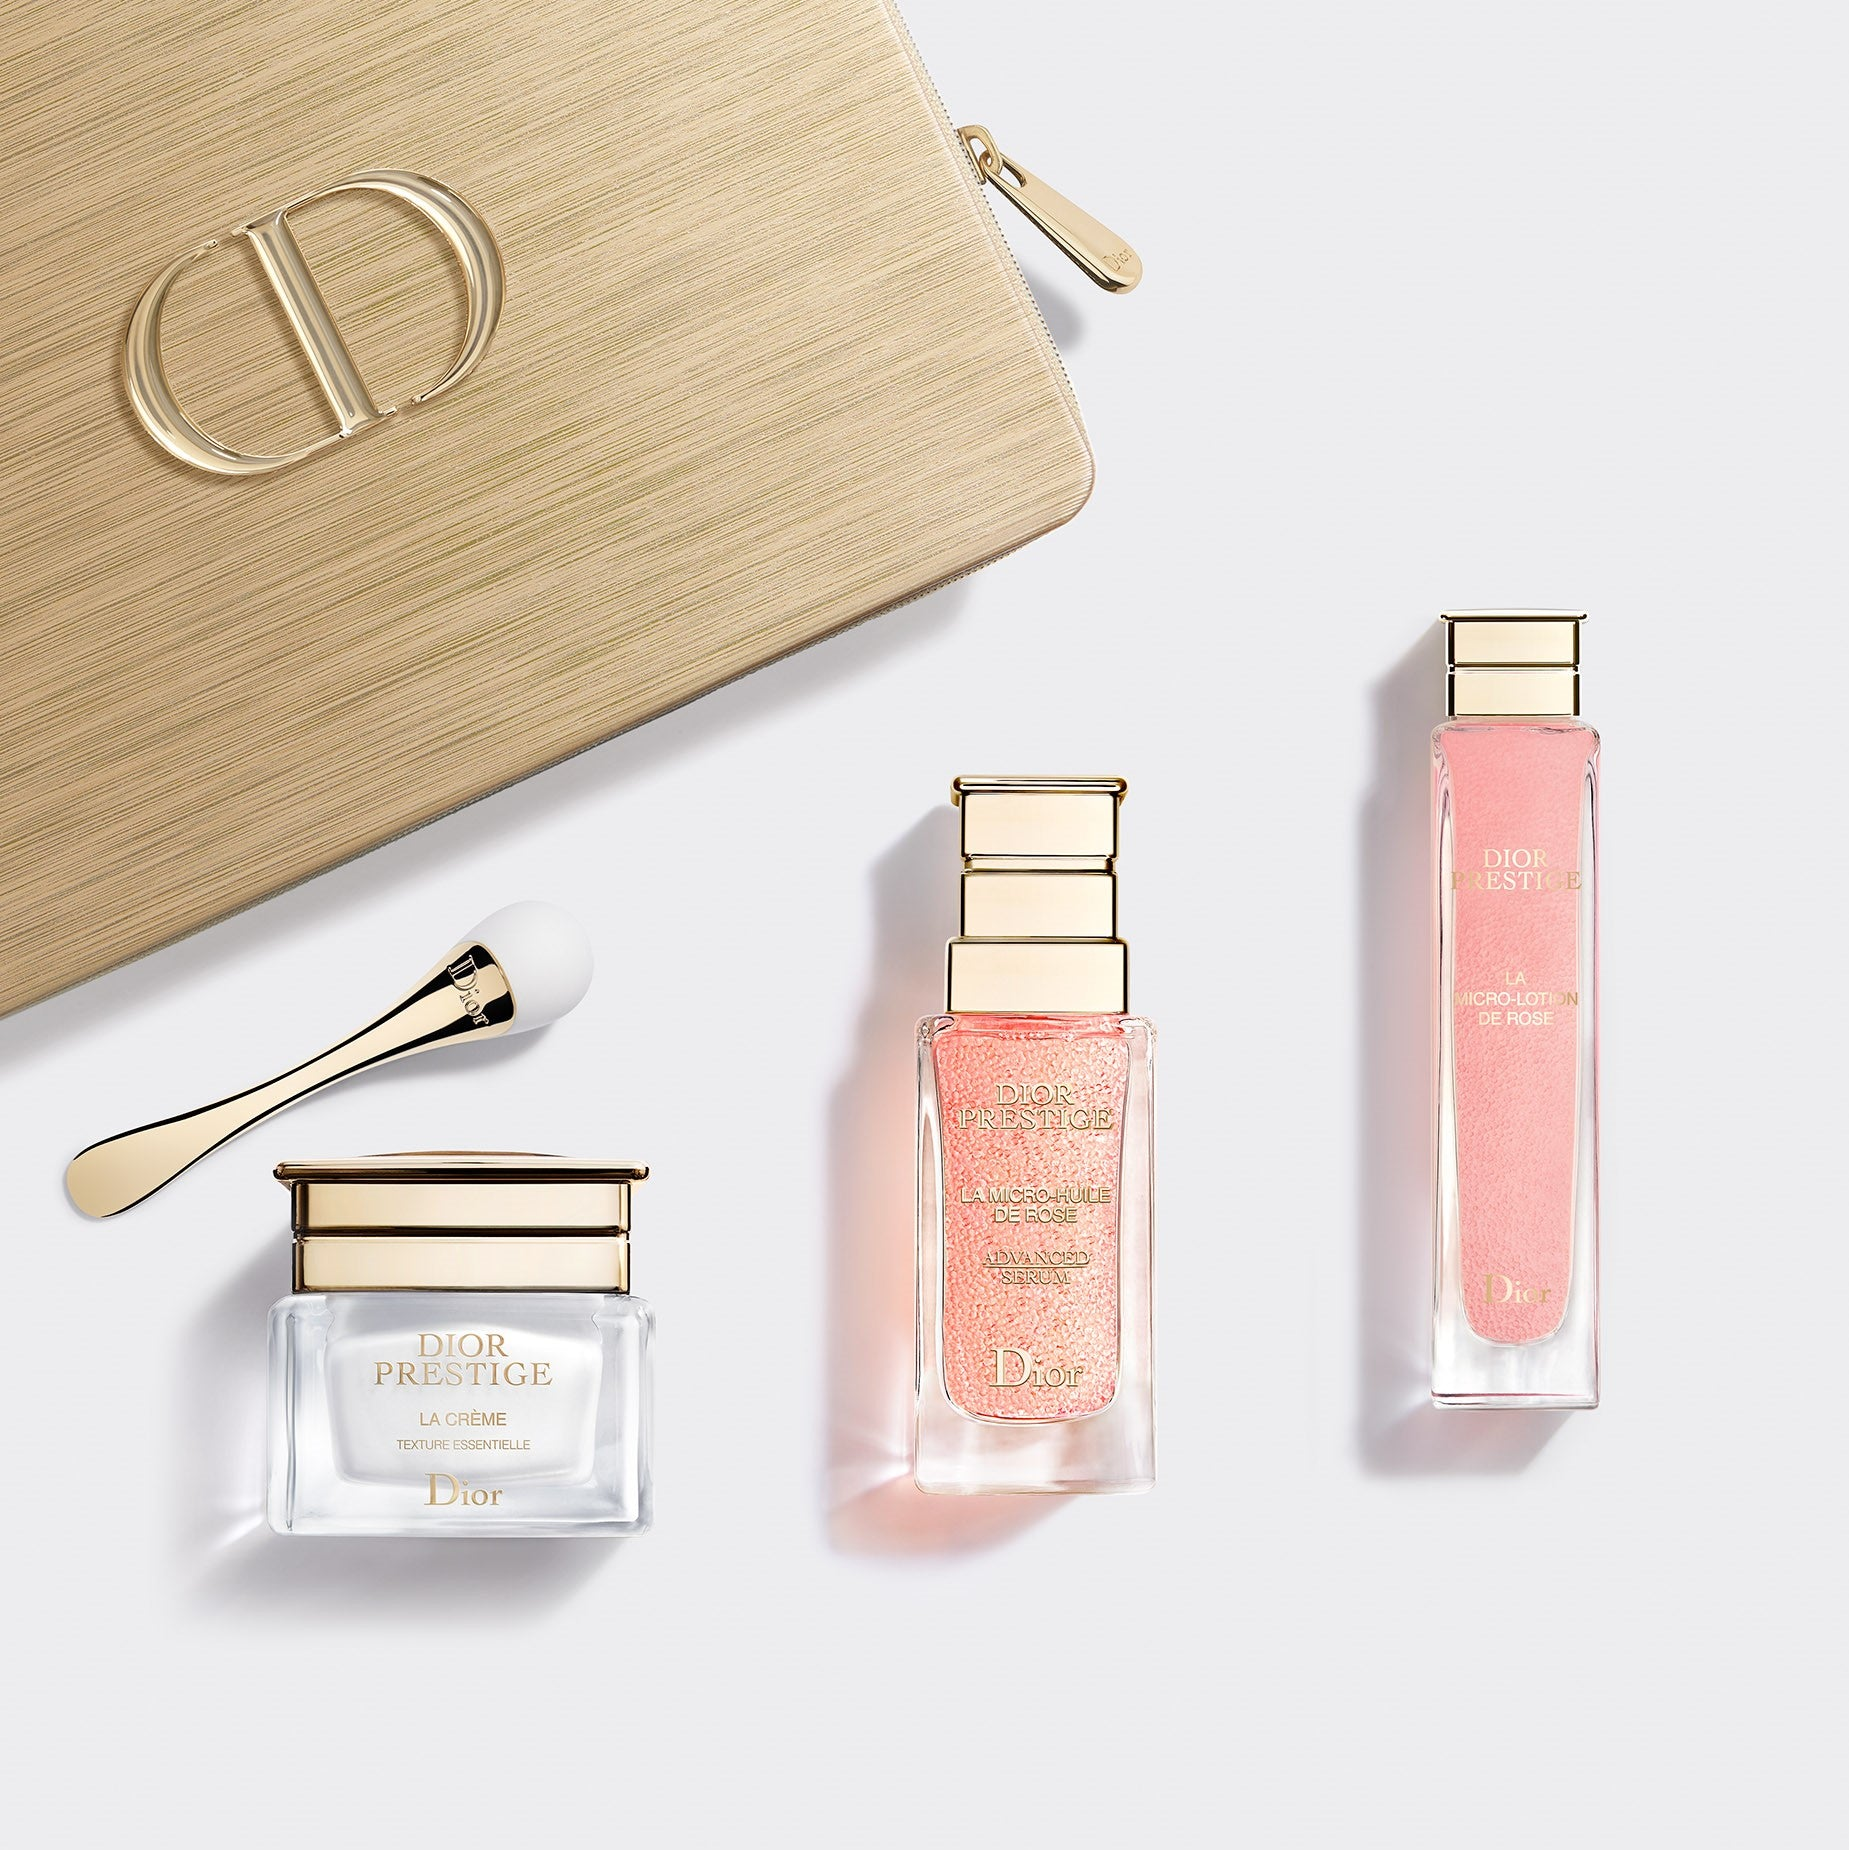 DIOR PRESTIGE ~ Exclusive Skincare Set: Exceptional Micro-Nutritive and Regenerating Ritual - Lotion, Serum and Crème